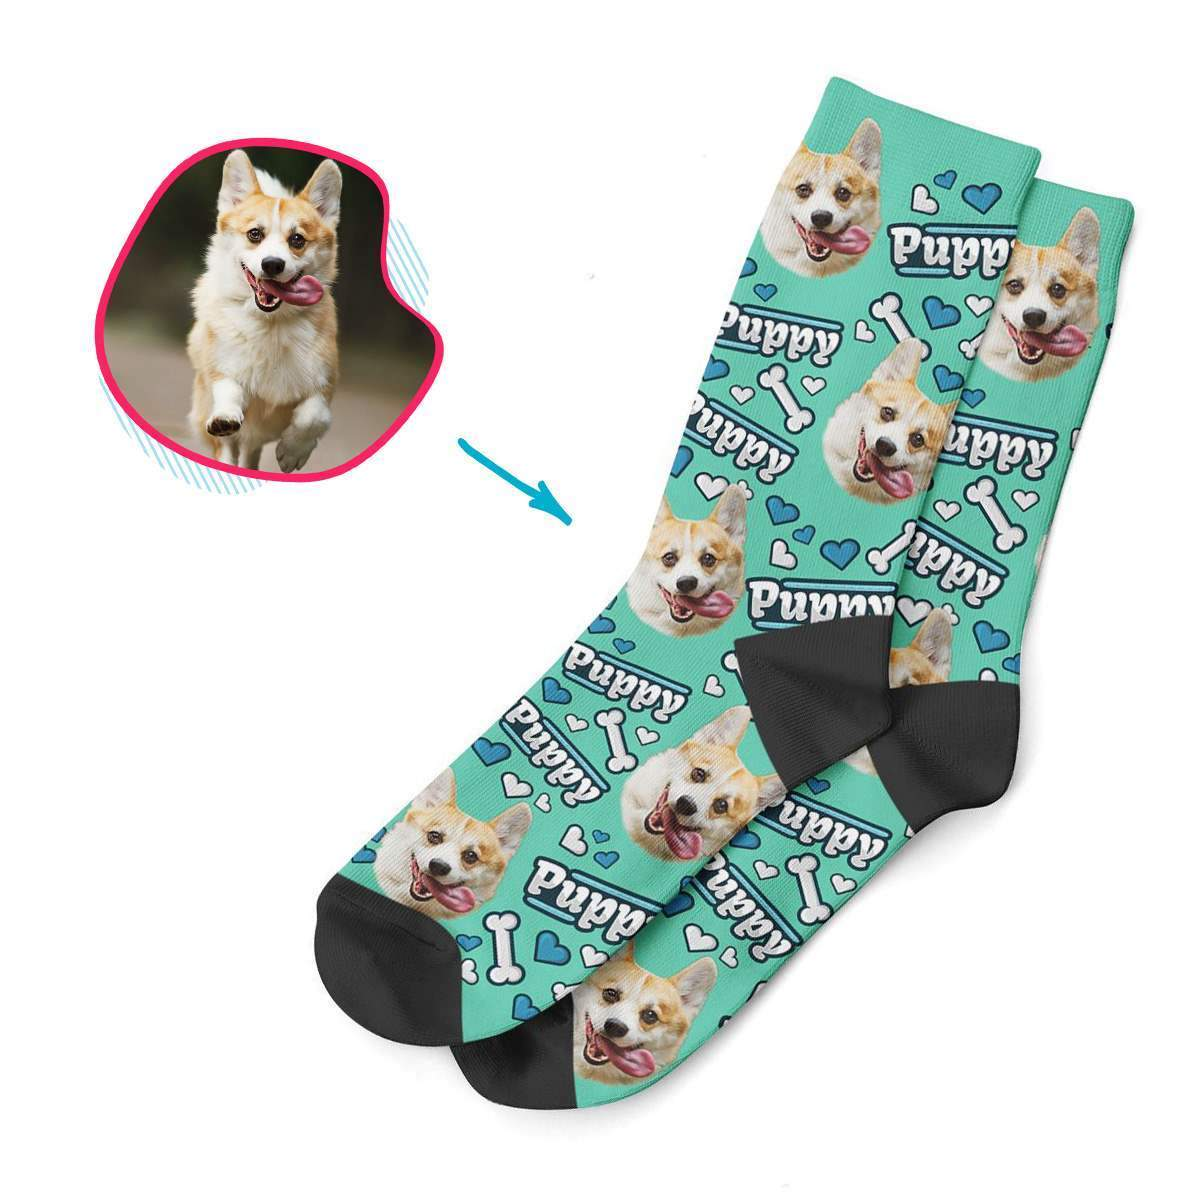 mint Puppy socks personalized with photo of face printed on them